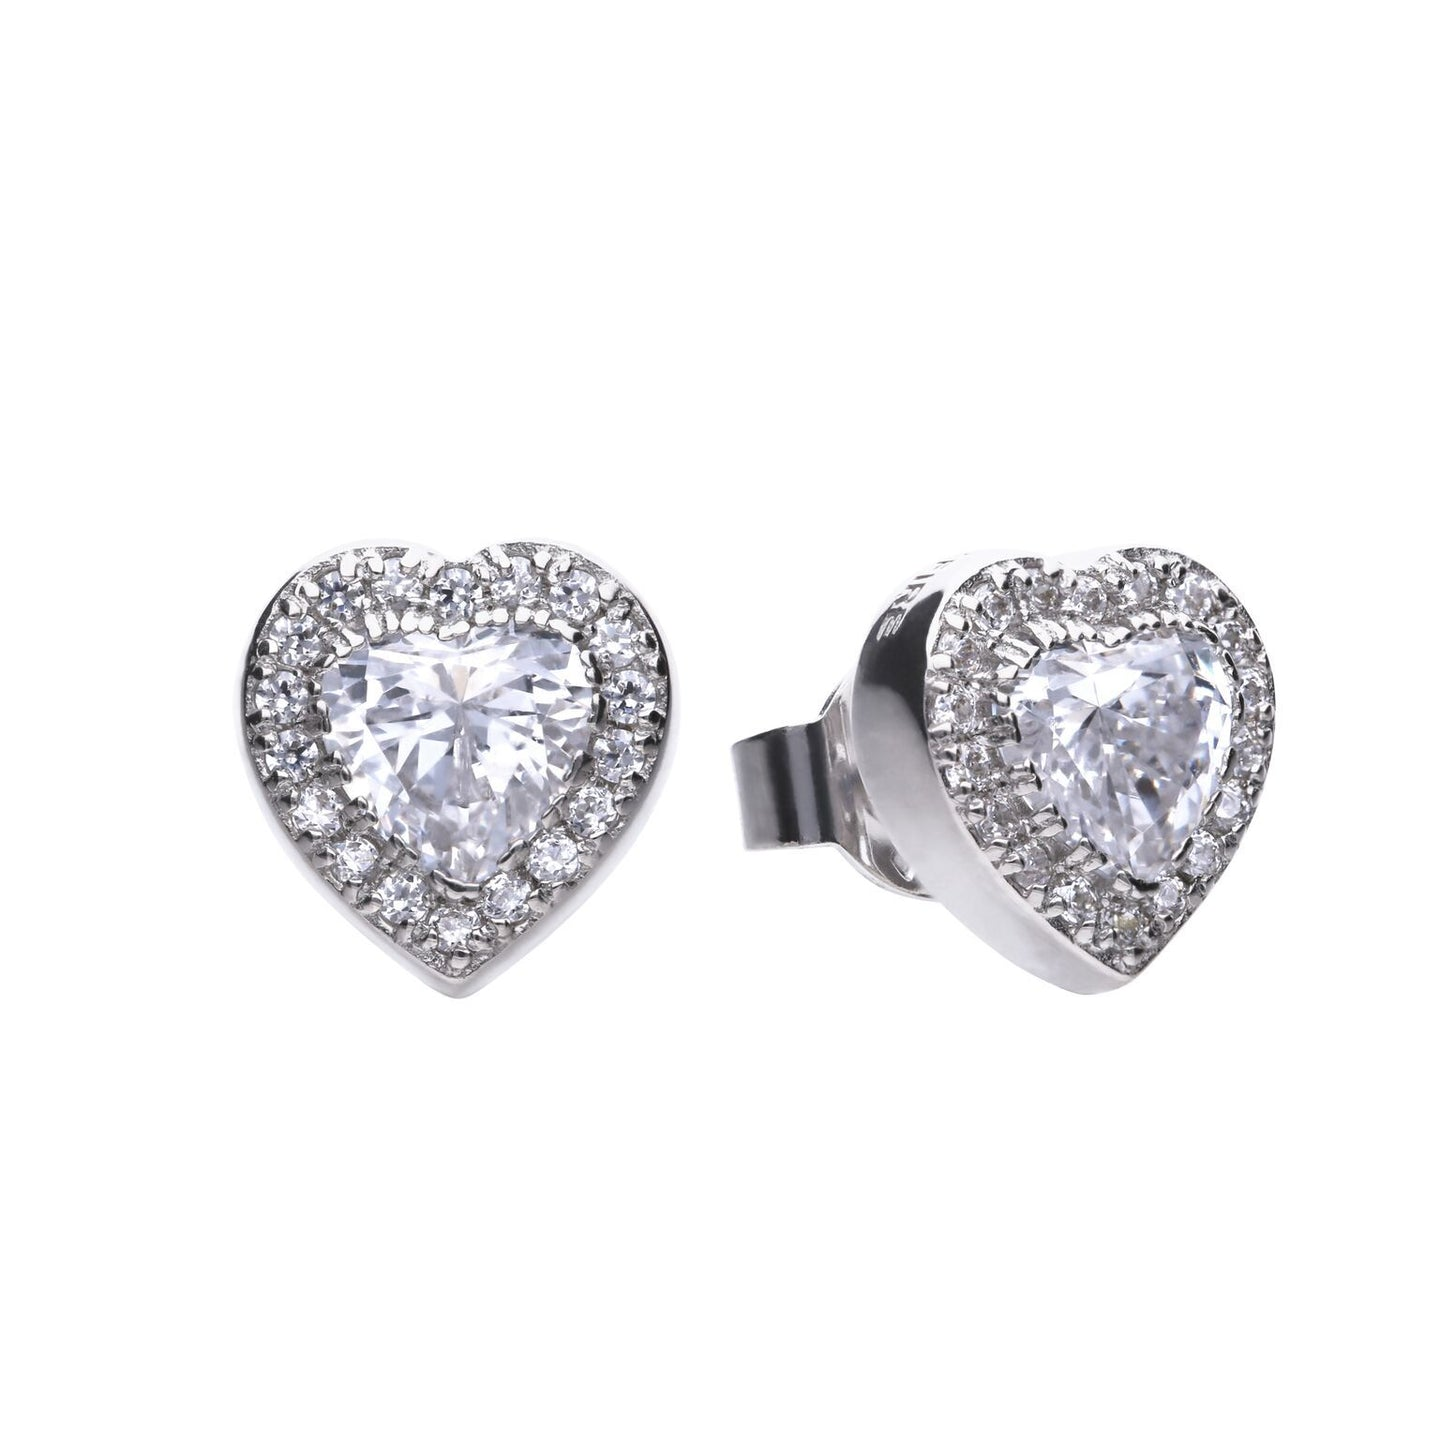 Heart Pave Stud Earrings E5589